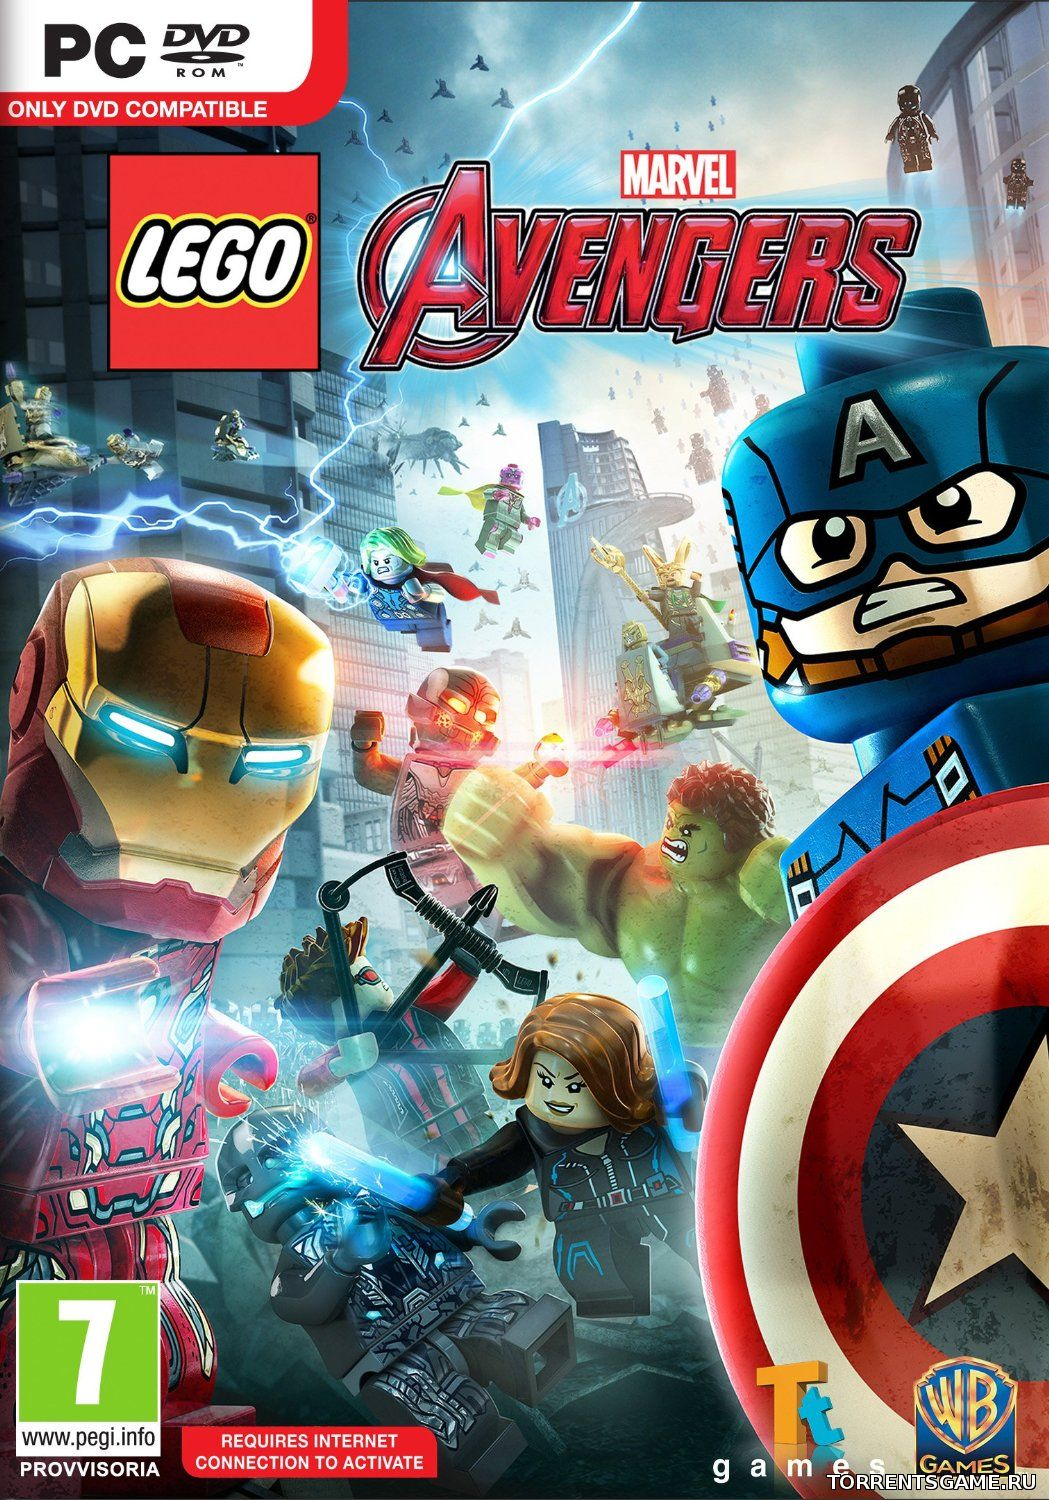 http://torrentsgame.ru/load/games/kids/lego_marvels_avengers/11-1-0-50